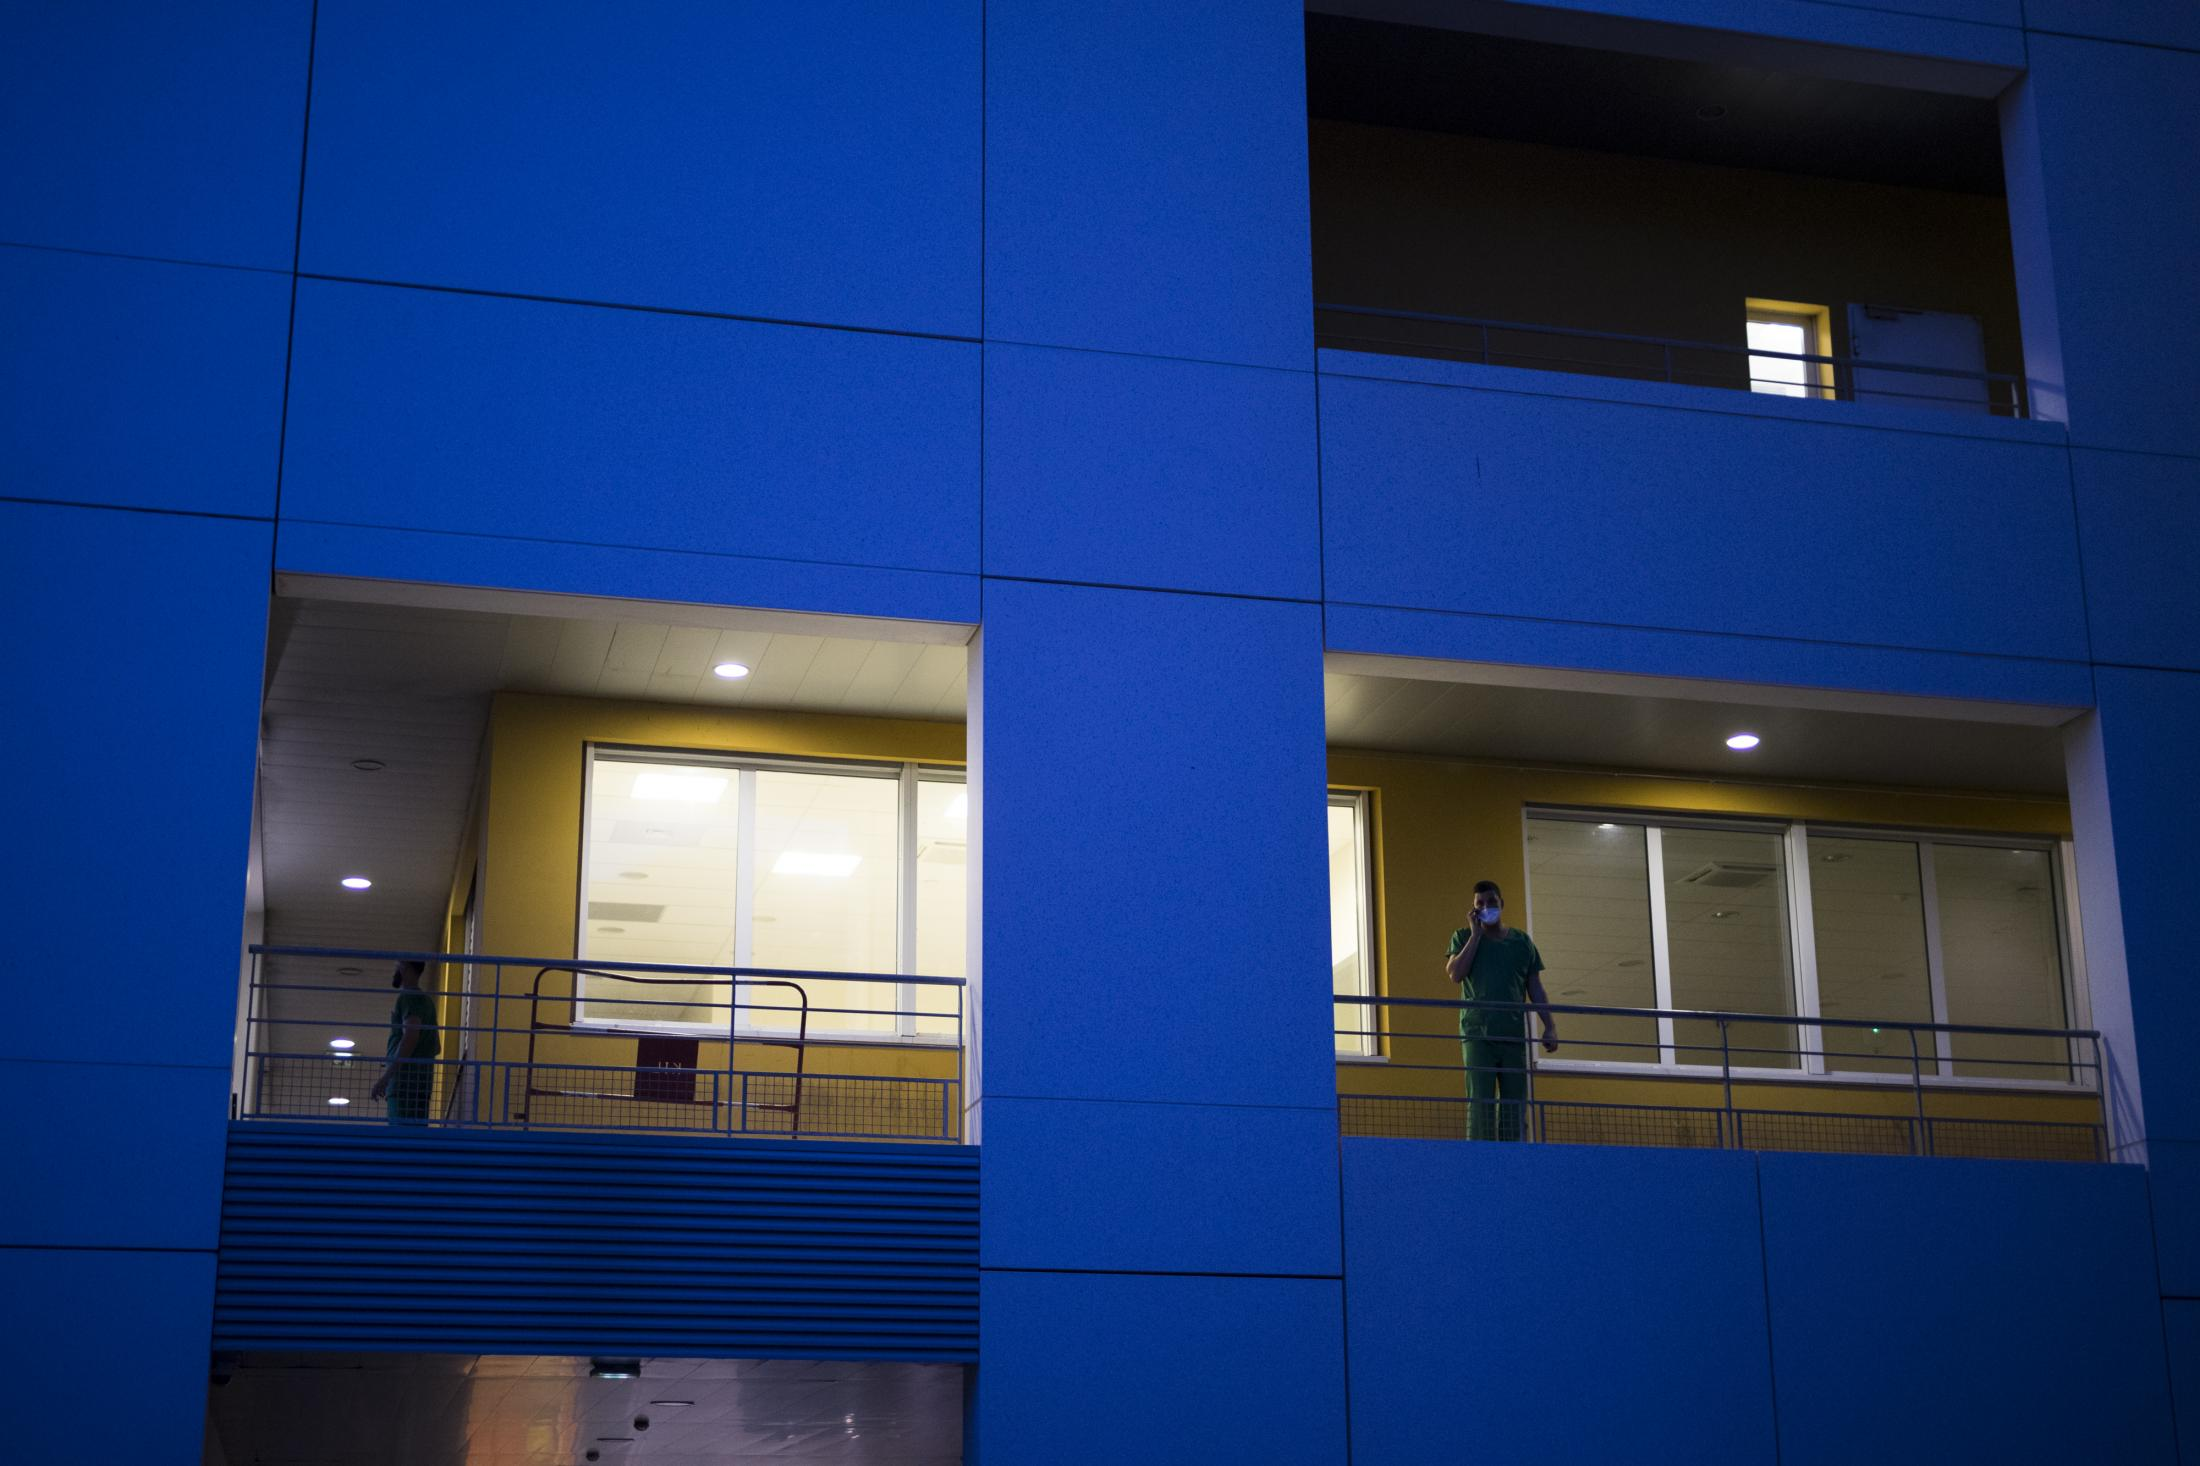 A hospital worker takes a break on an outdoor walkway as the day shift comes to an end and night falls upon the La Timone hospital in Marseille, southern France, Thursday, Nov. 12, 2020. (AP Photo/Daniel Cole)